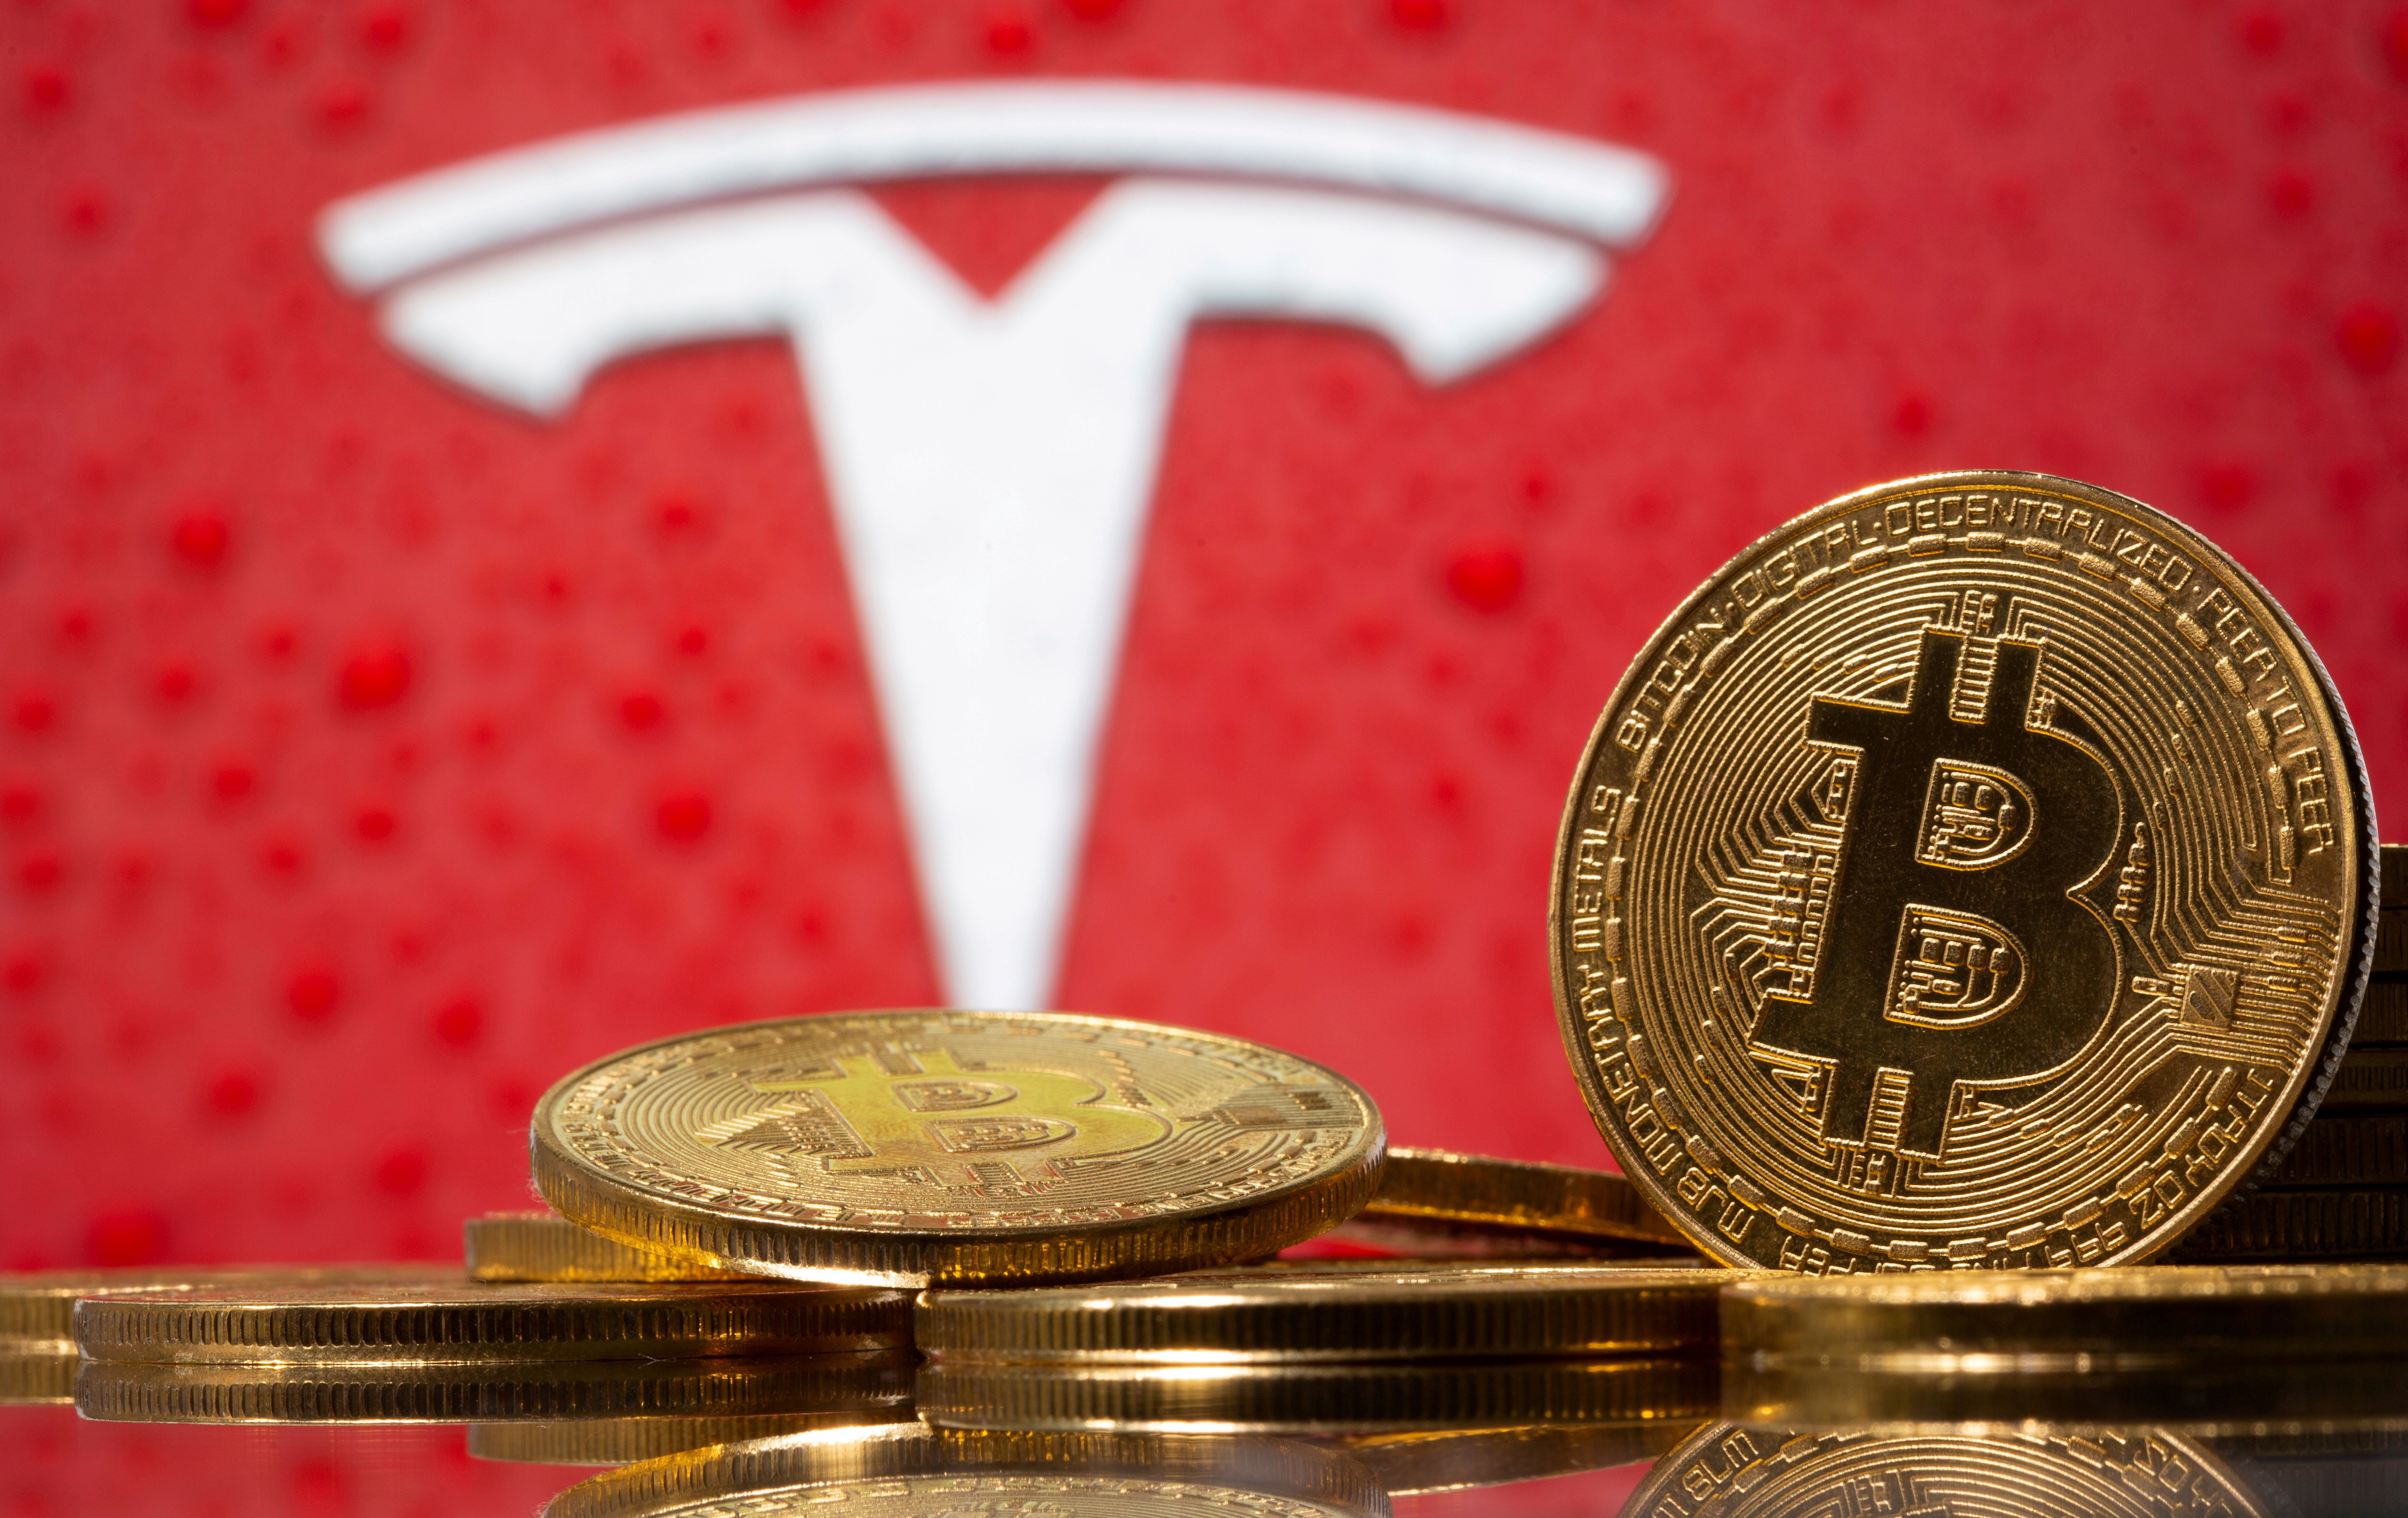 Representations of virtual currency Bitcoin are seen in front of Tesla logo in this illustration taken, February 9, 2021. REUTERS/Dado Ruvic/File Photo/File Photo